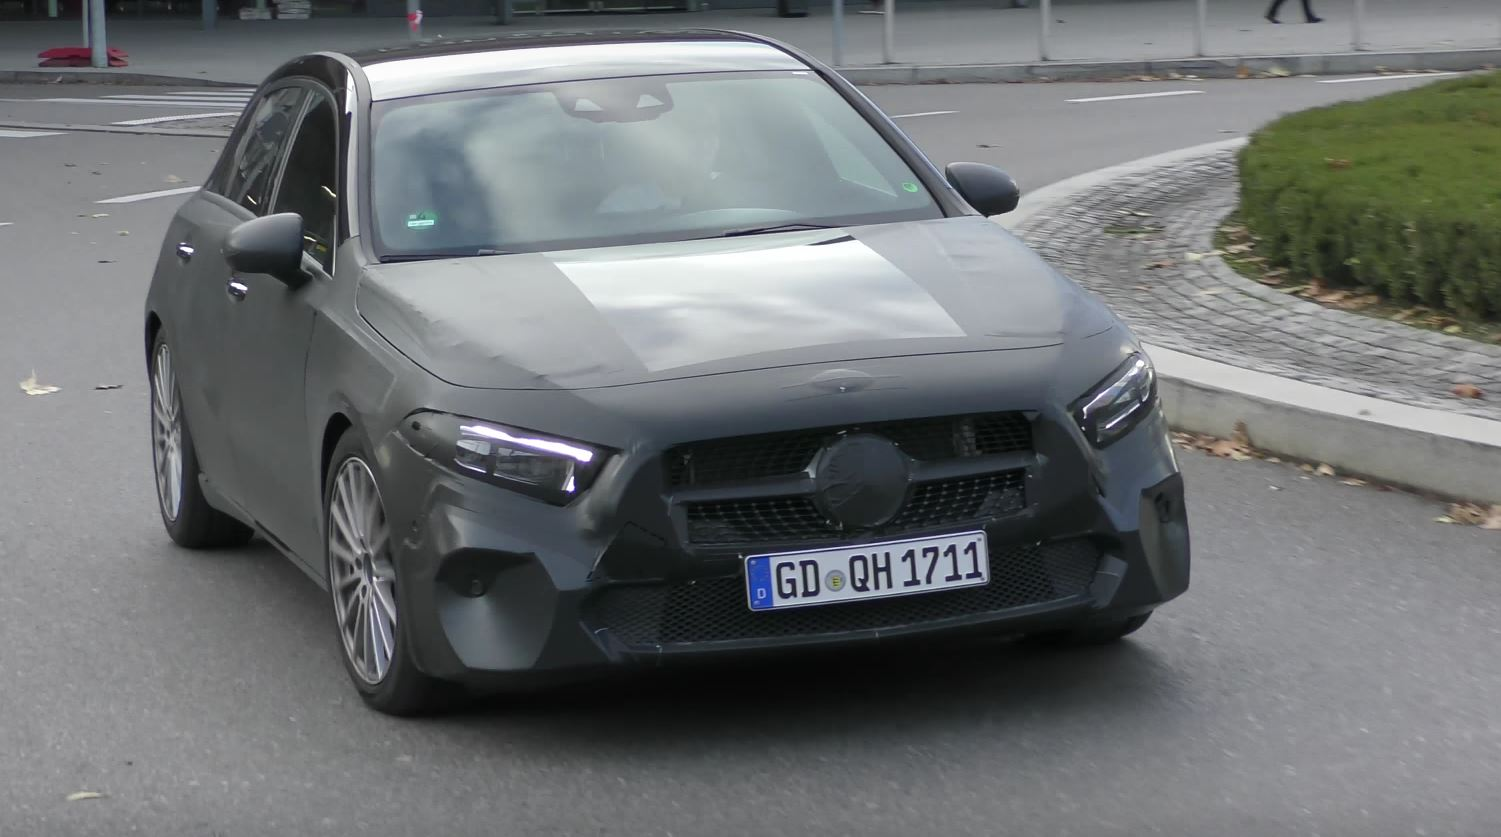 Mercedes-Benz CLS images leak online, we expected more